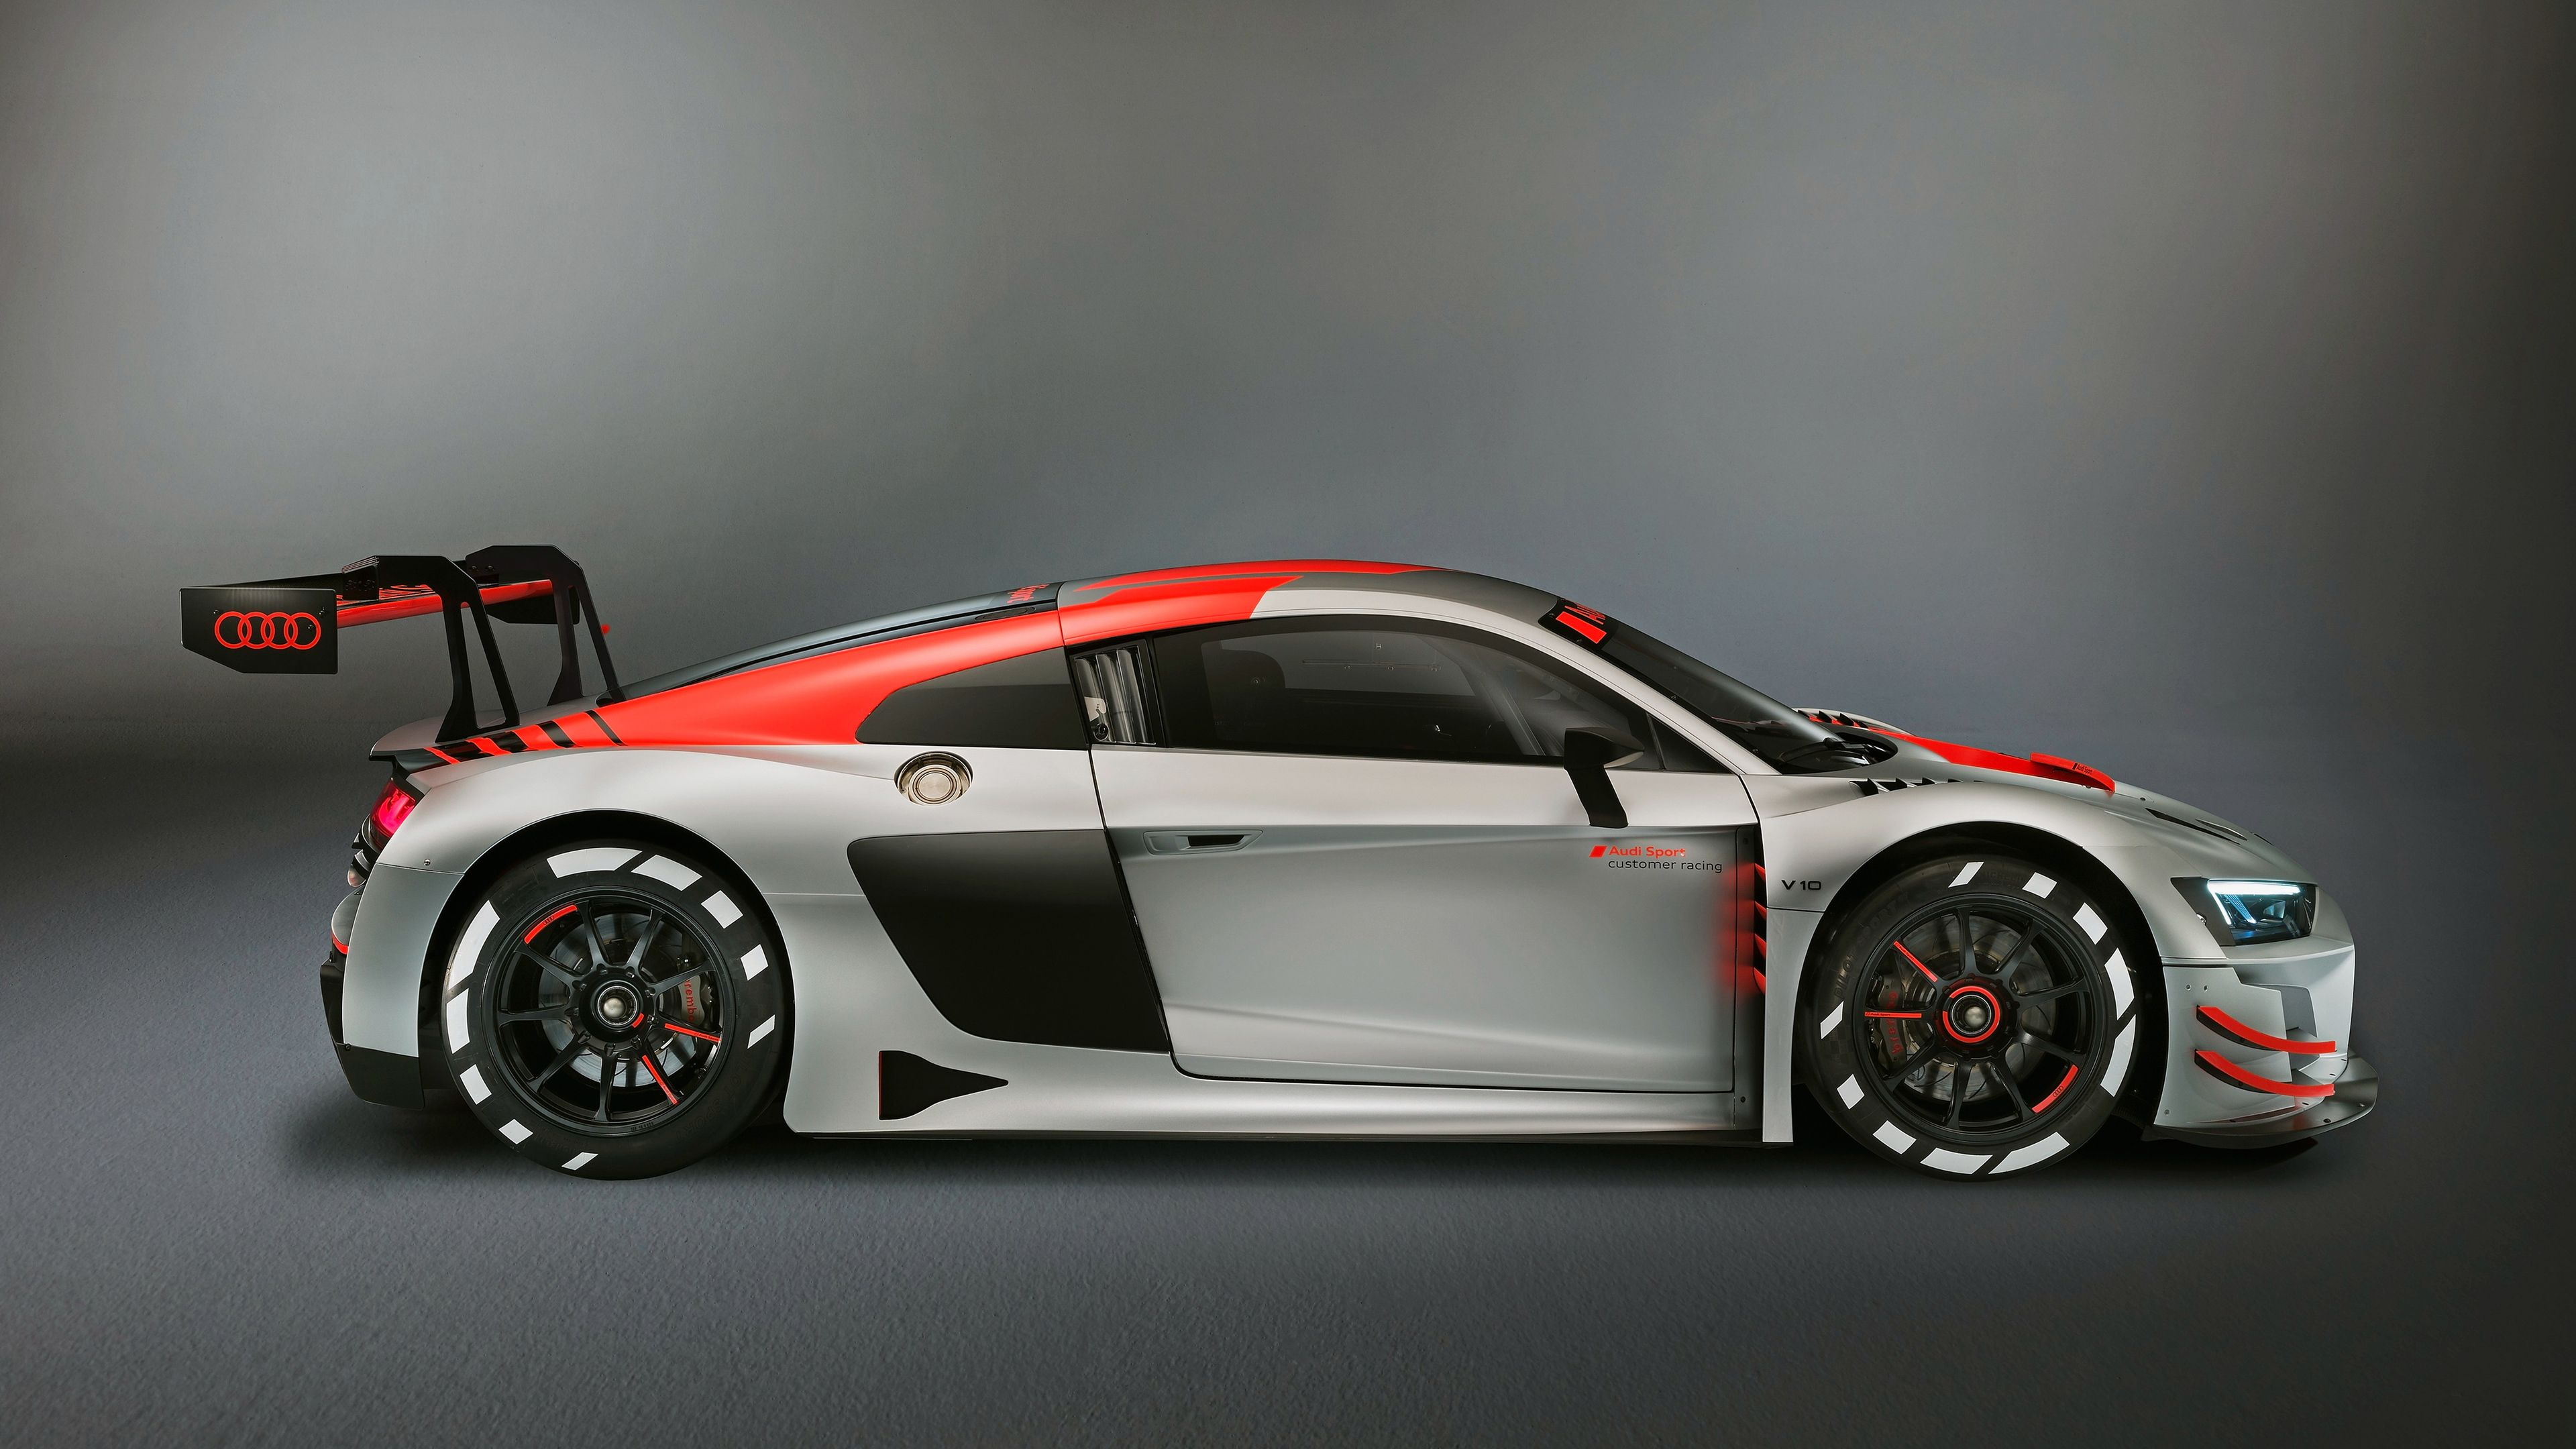 2019 Audi R8 LMS Side View 4k hd wallpapers cars wallpapers audi 3840x2160